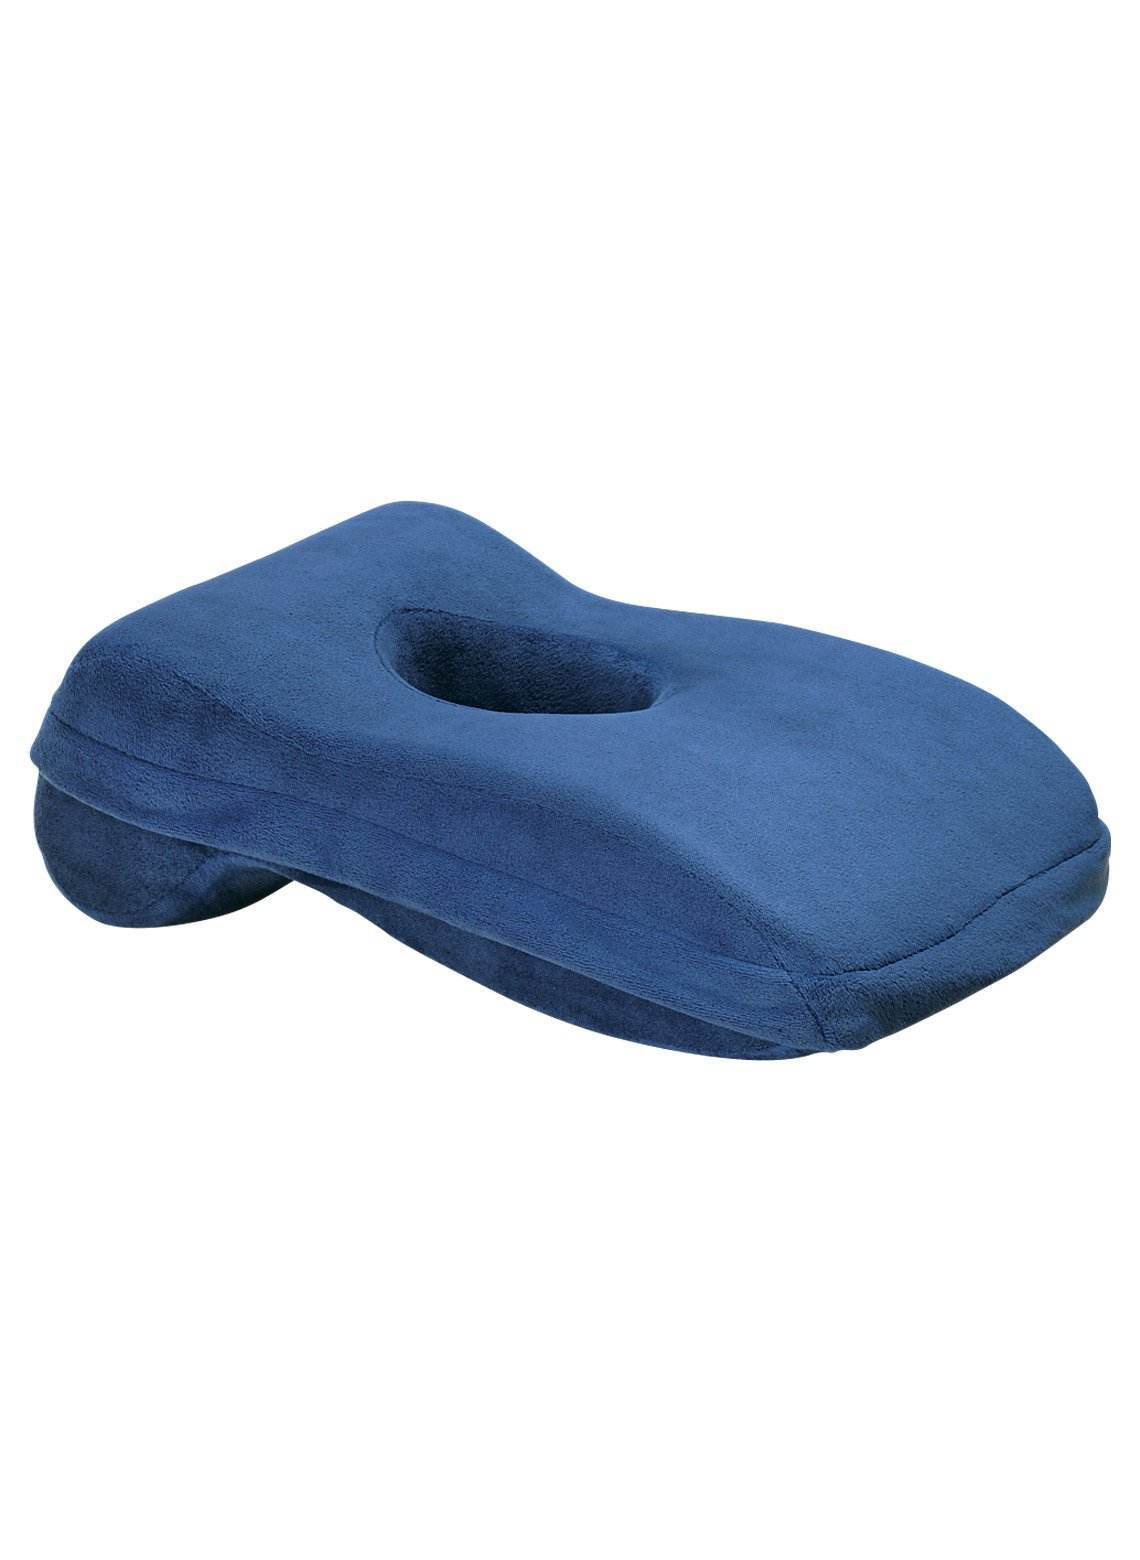 Napping Pillow by Dr. Leonard's